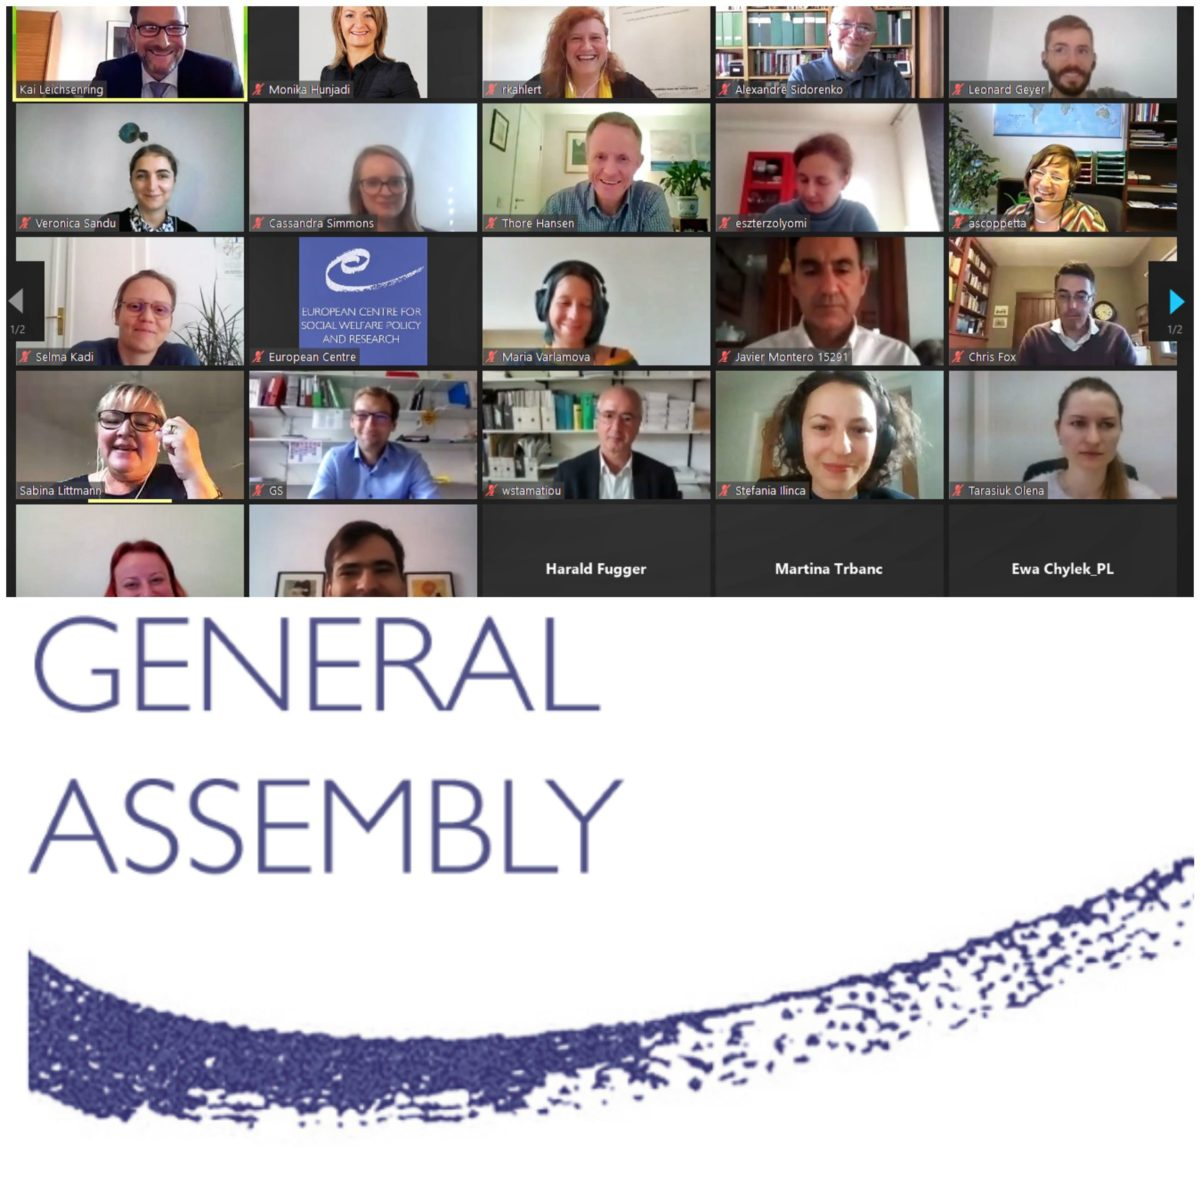 European Centre: 46th General Assembly Meeting